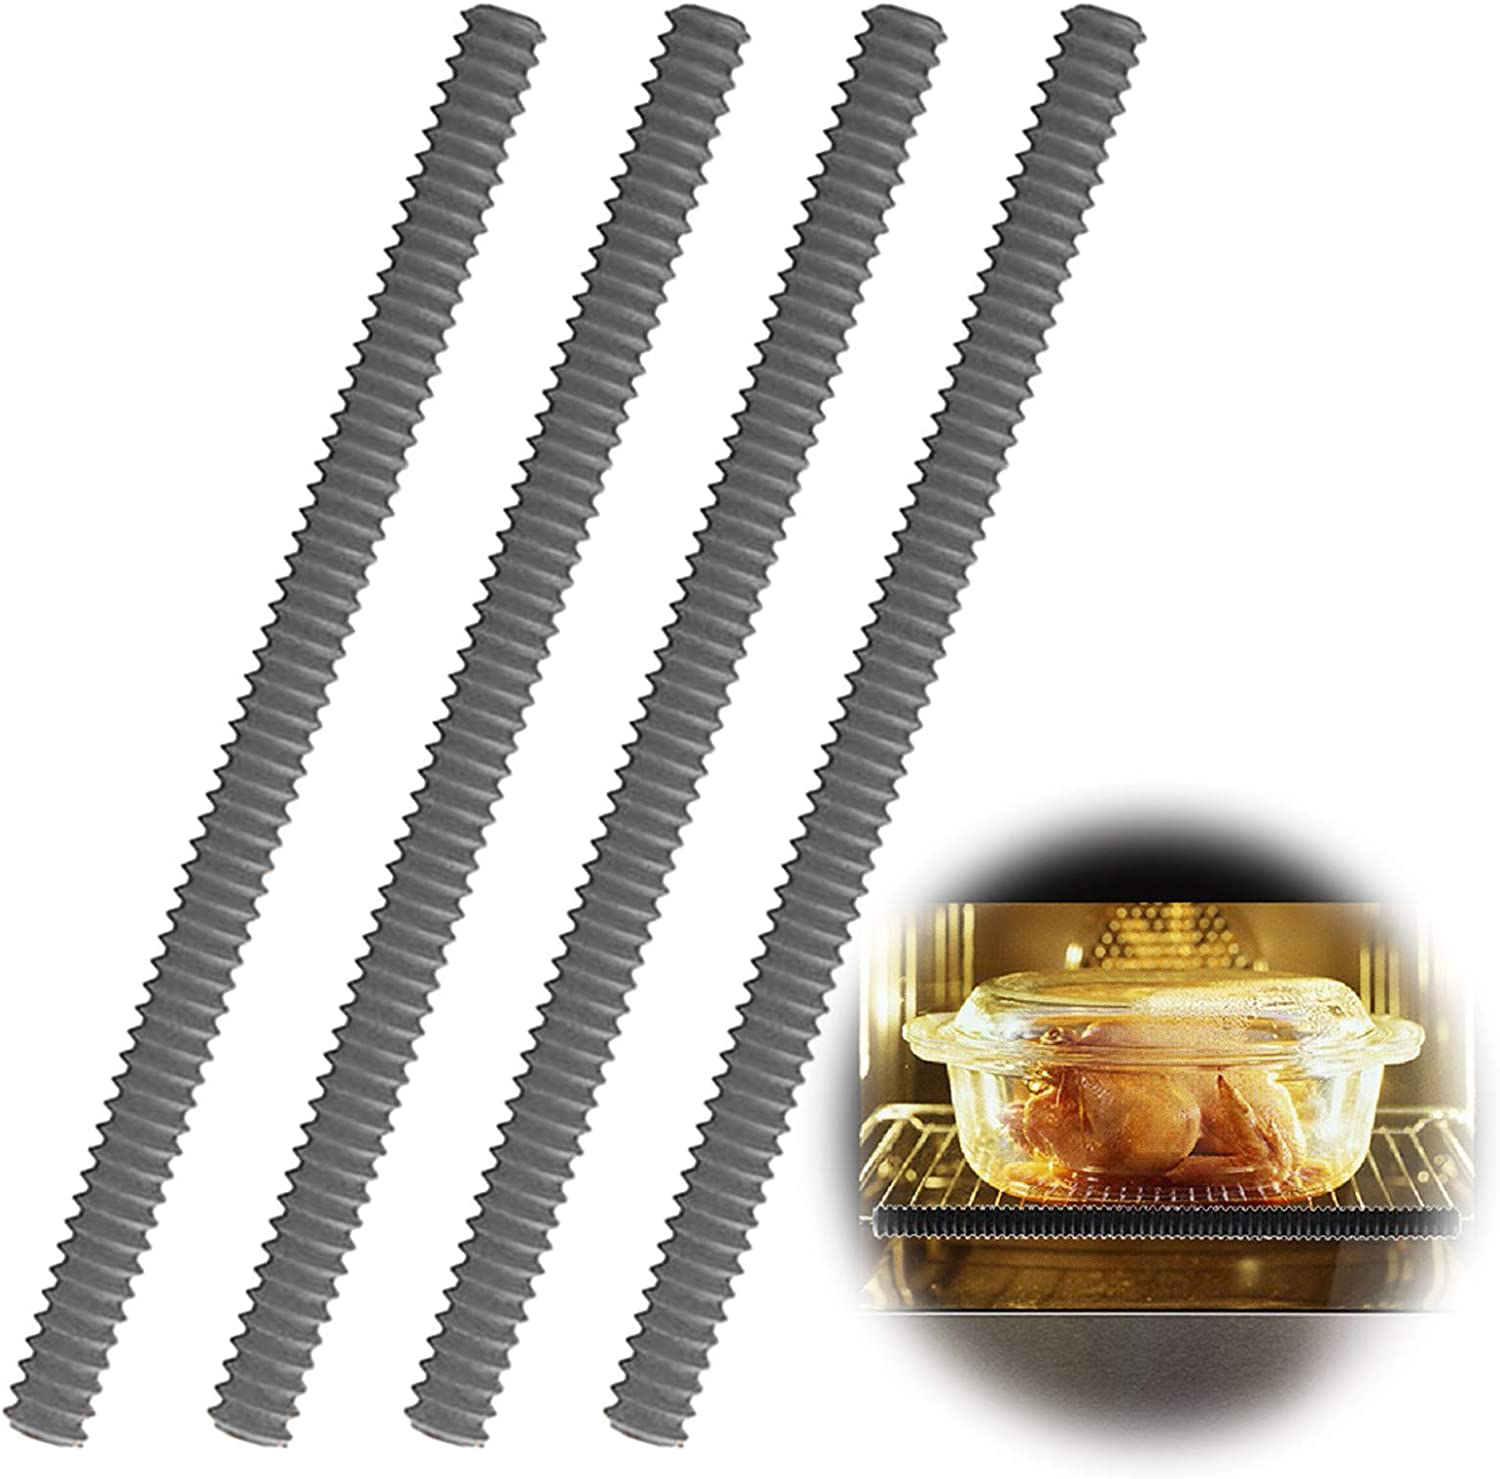 Oven Rack Protectors Mail order - 4 Resistant Heat Guard Silicone Beauty products Pack